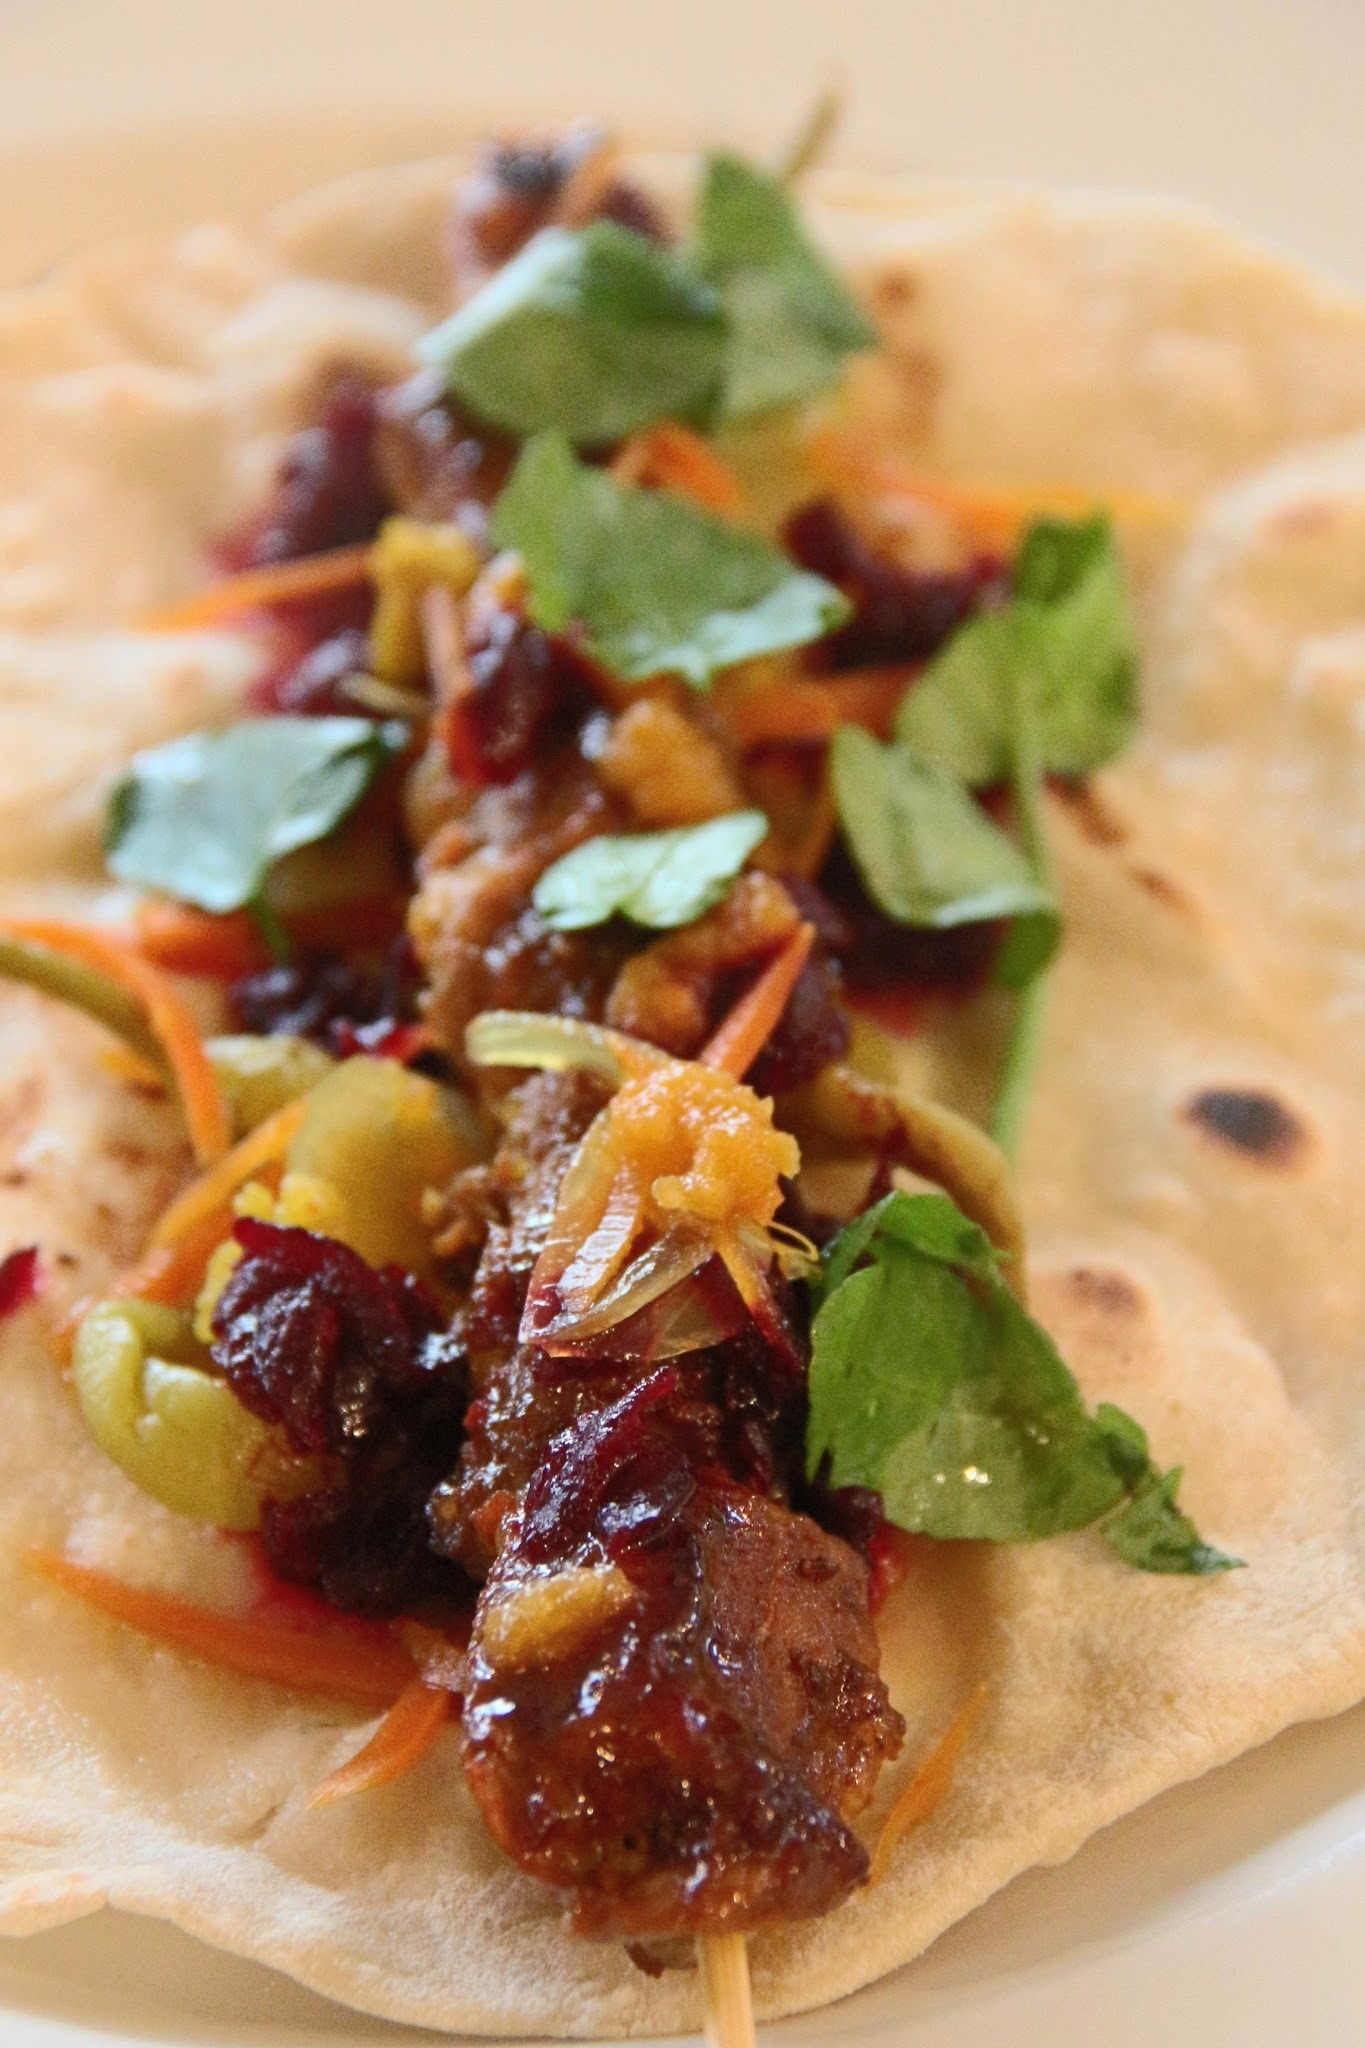 SWEET STICKY AROMATIC PORK KEBABS